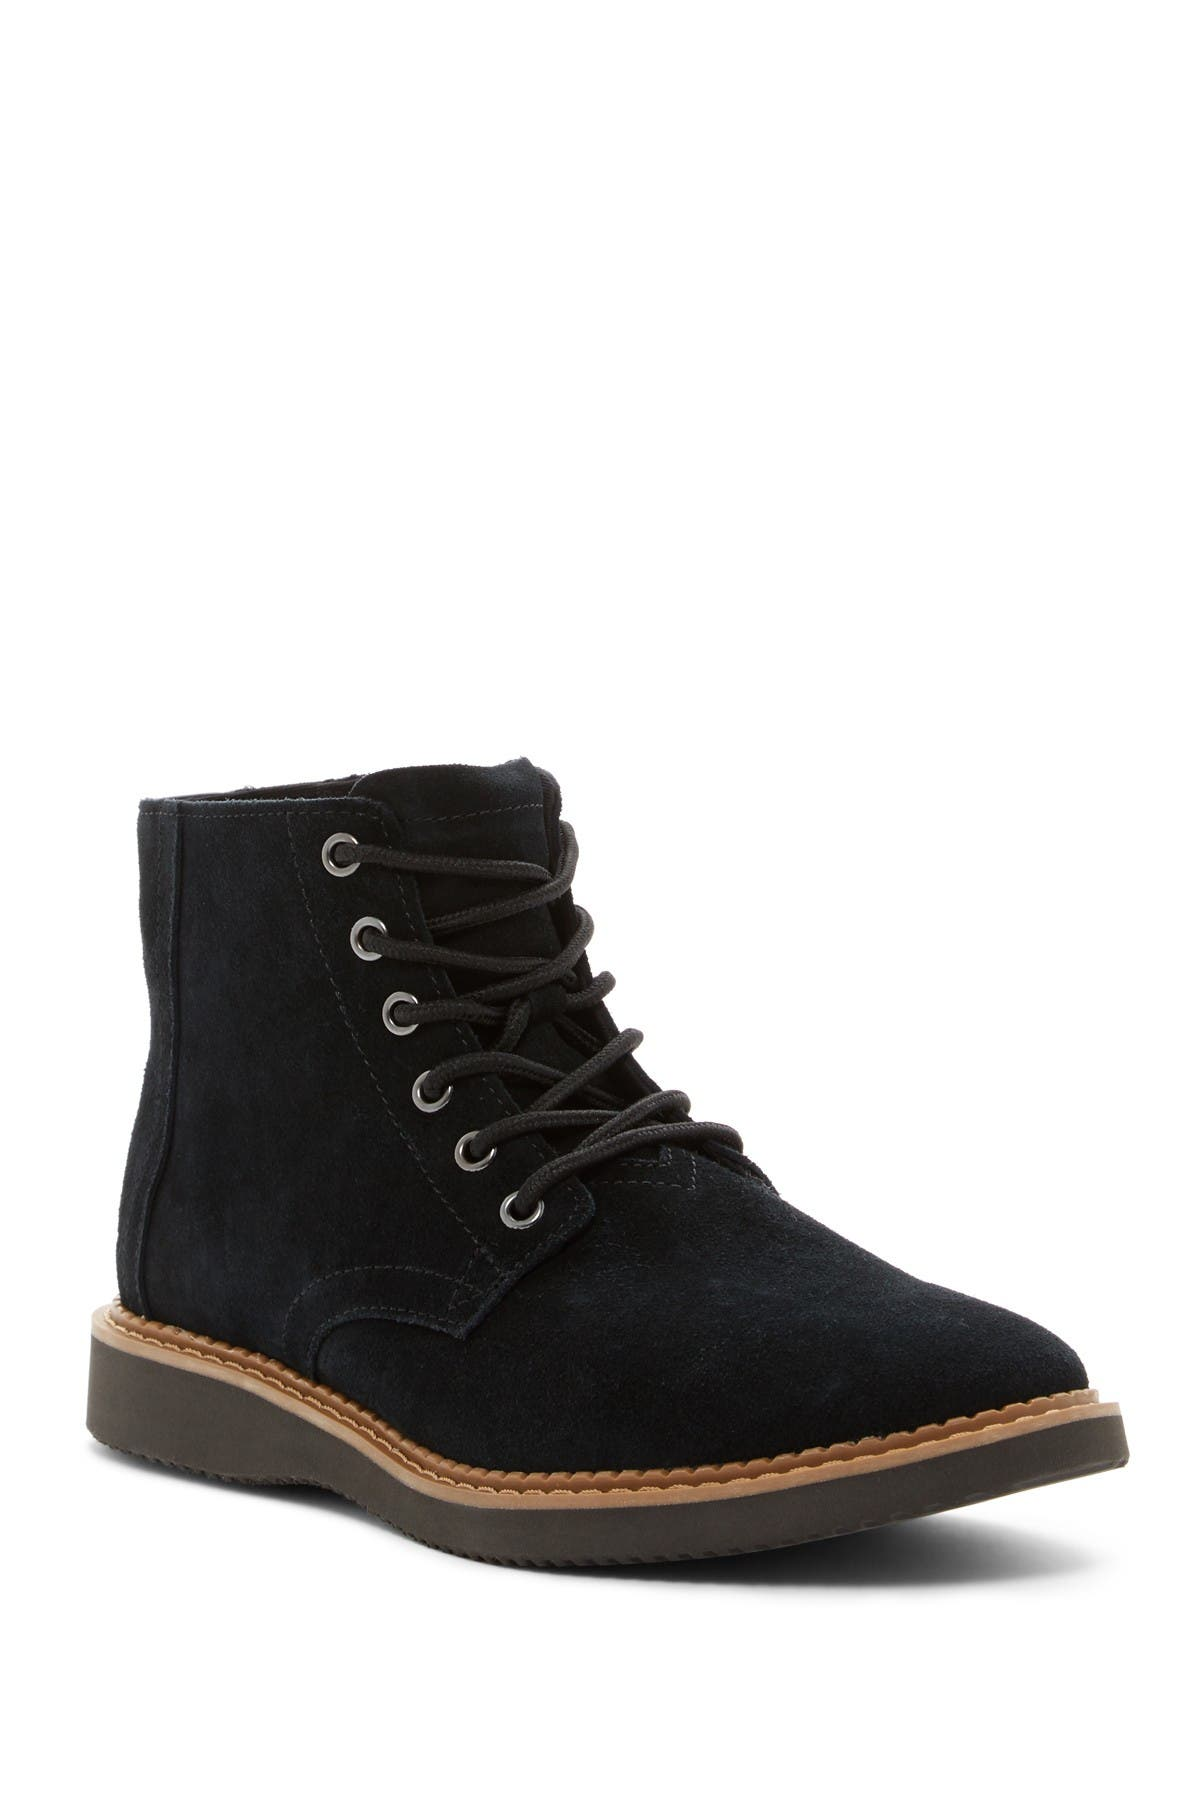 Image of TOMS Porter Suede Chelsea Boot